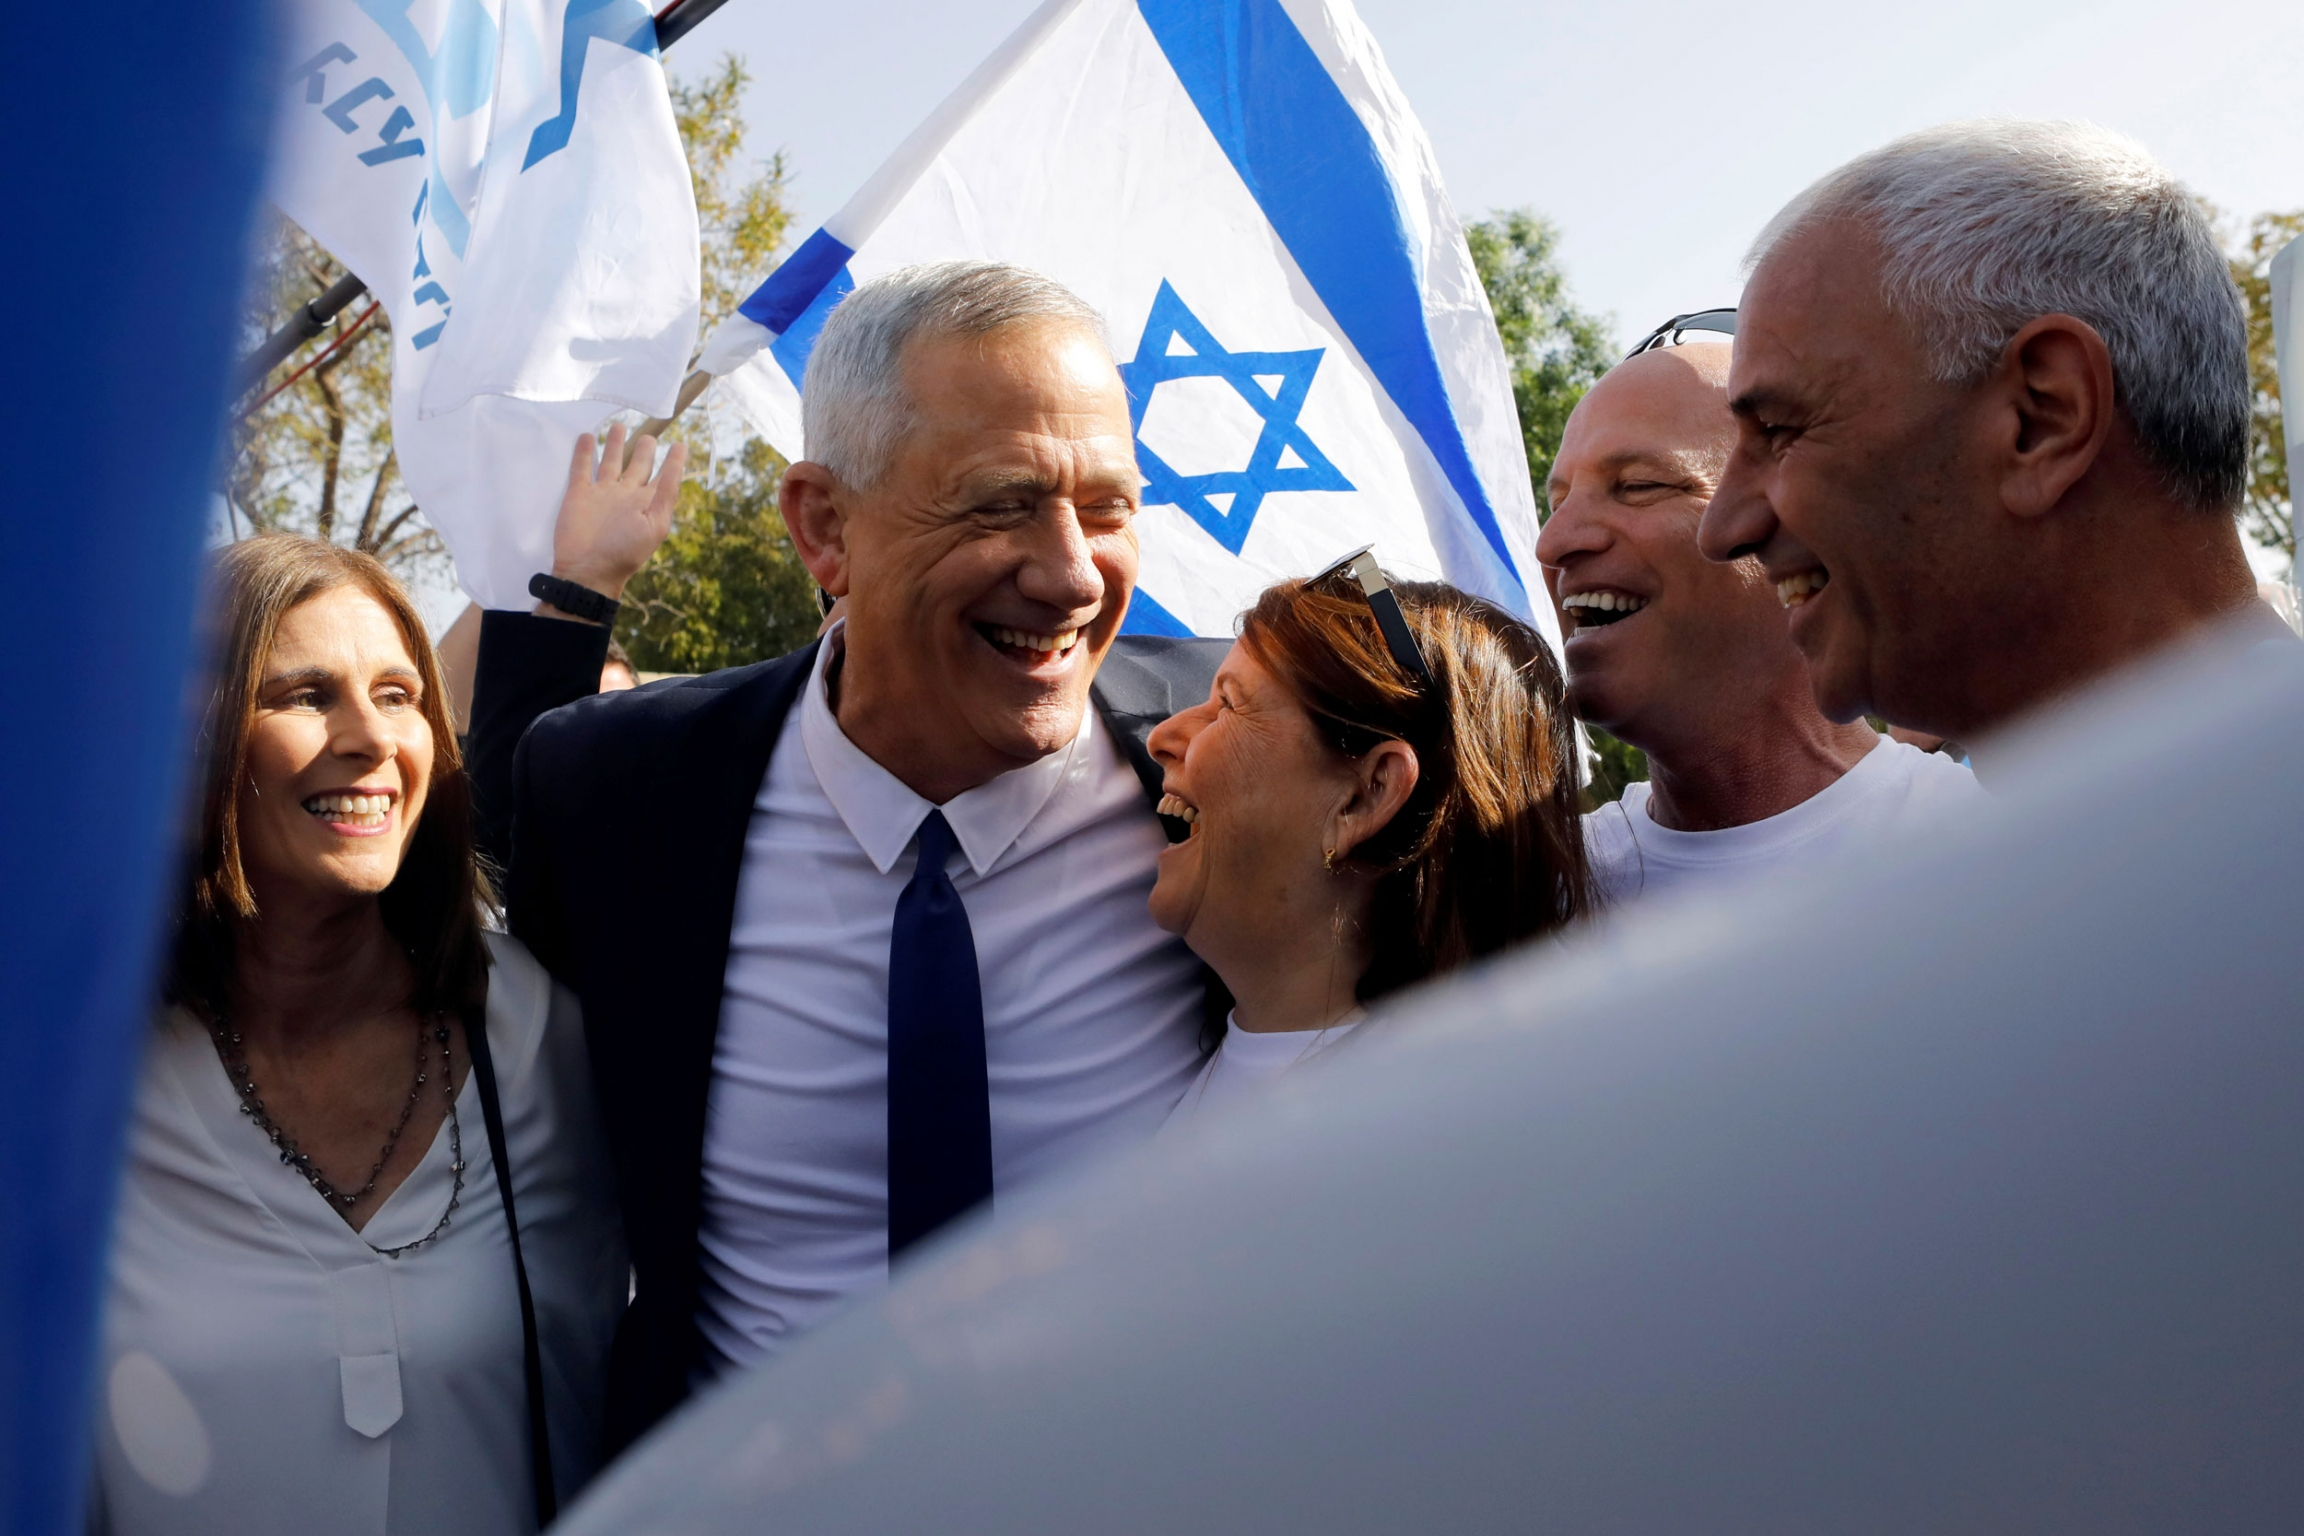 Benny Gantz is shown hugging his wife under his arm and an Israeli flag held behind him in the background.